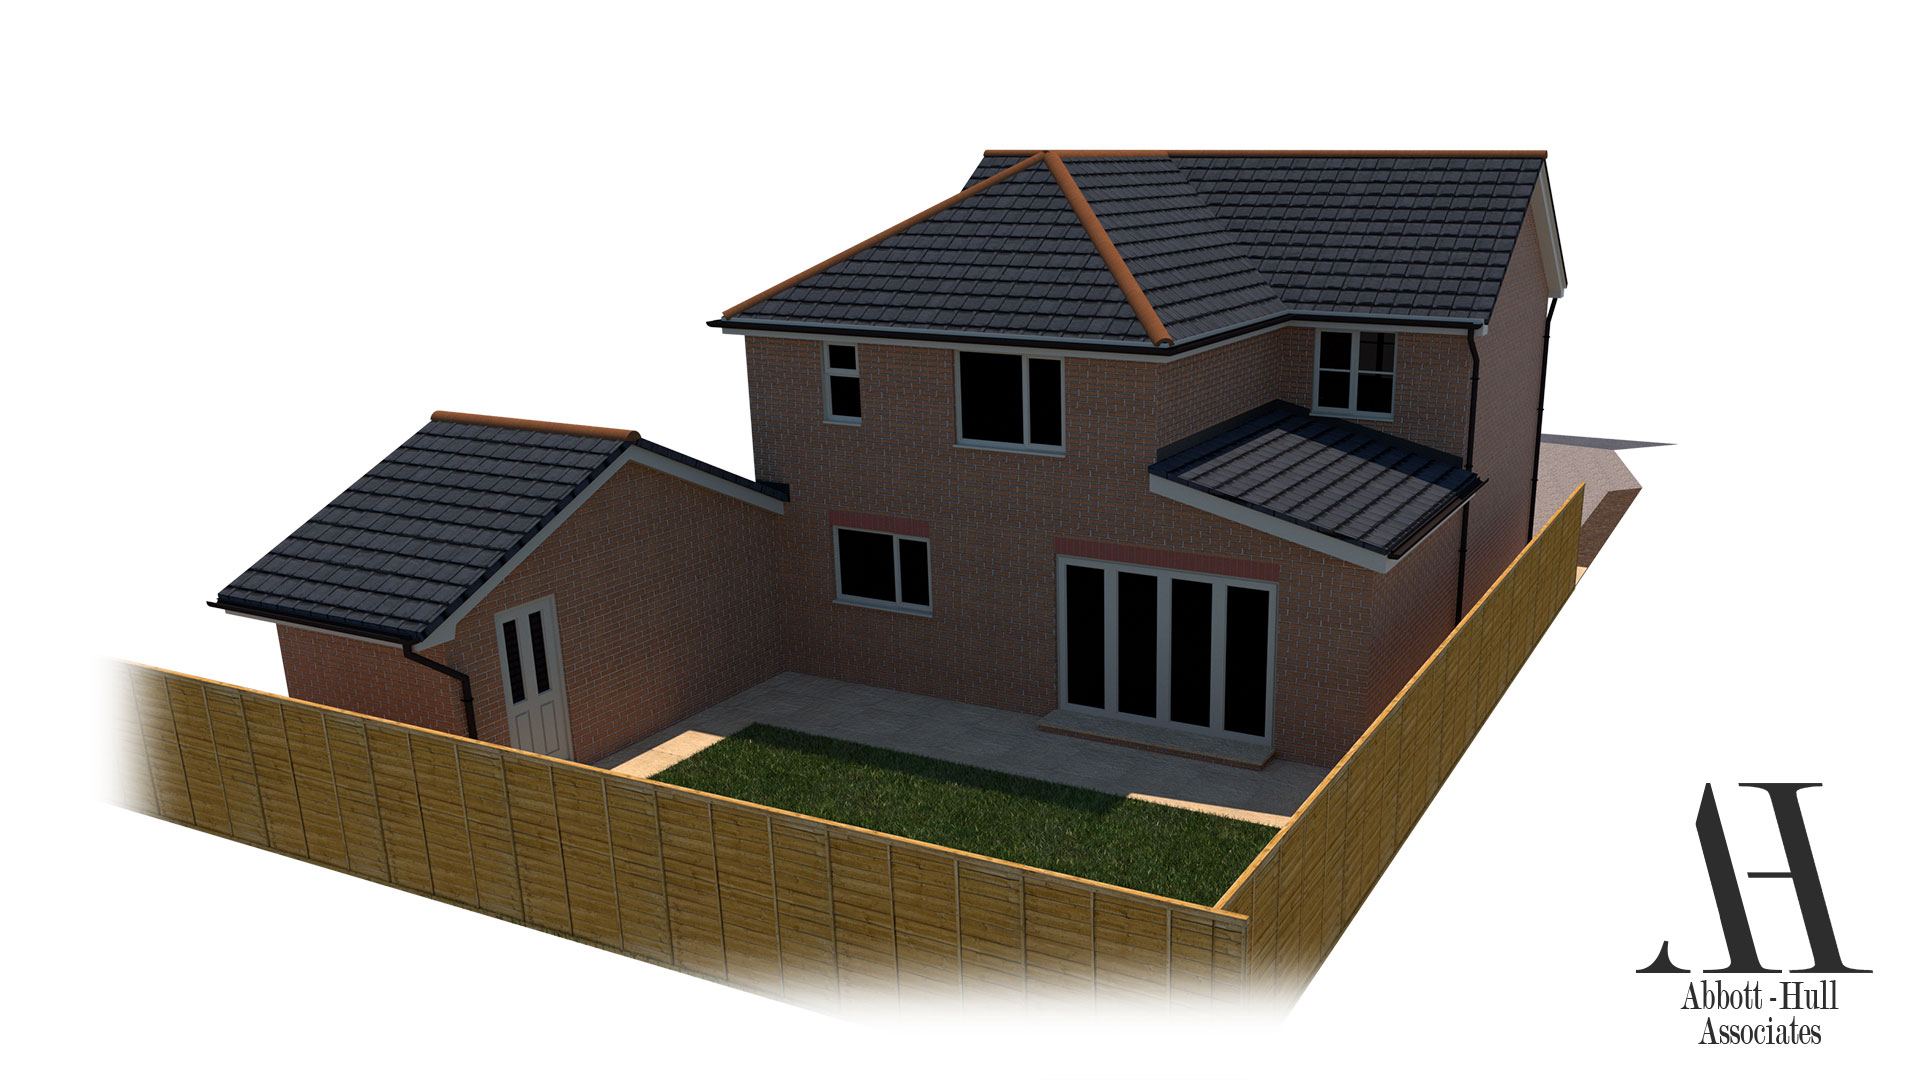 Dallem Dell, Thornton-Cleveleys, House Extension - Proposed Visual D